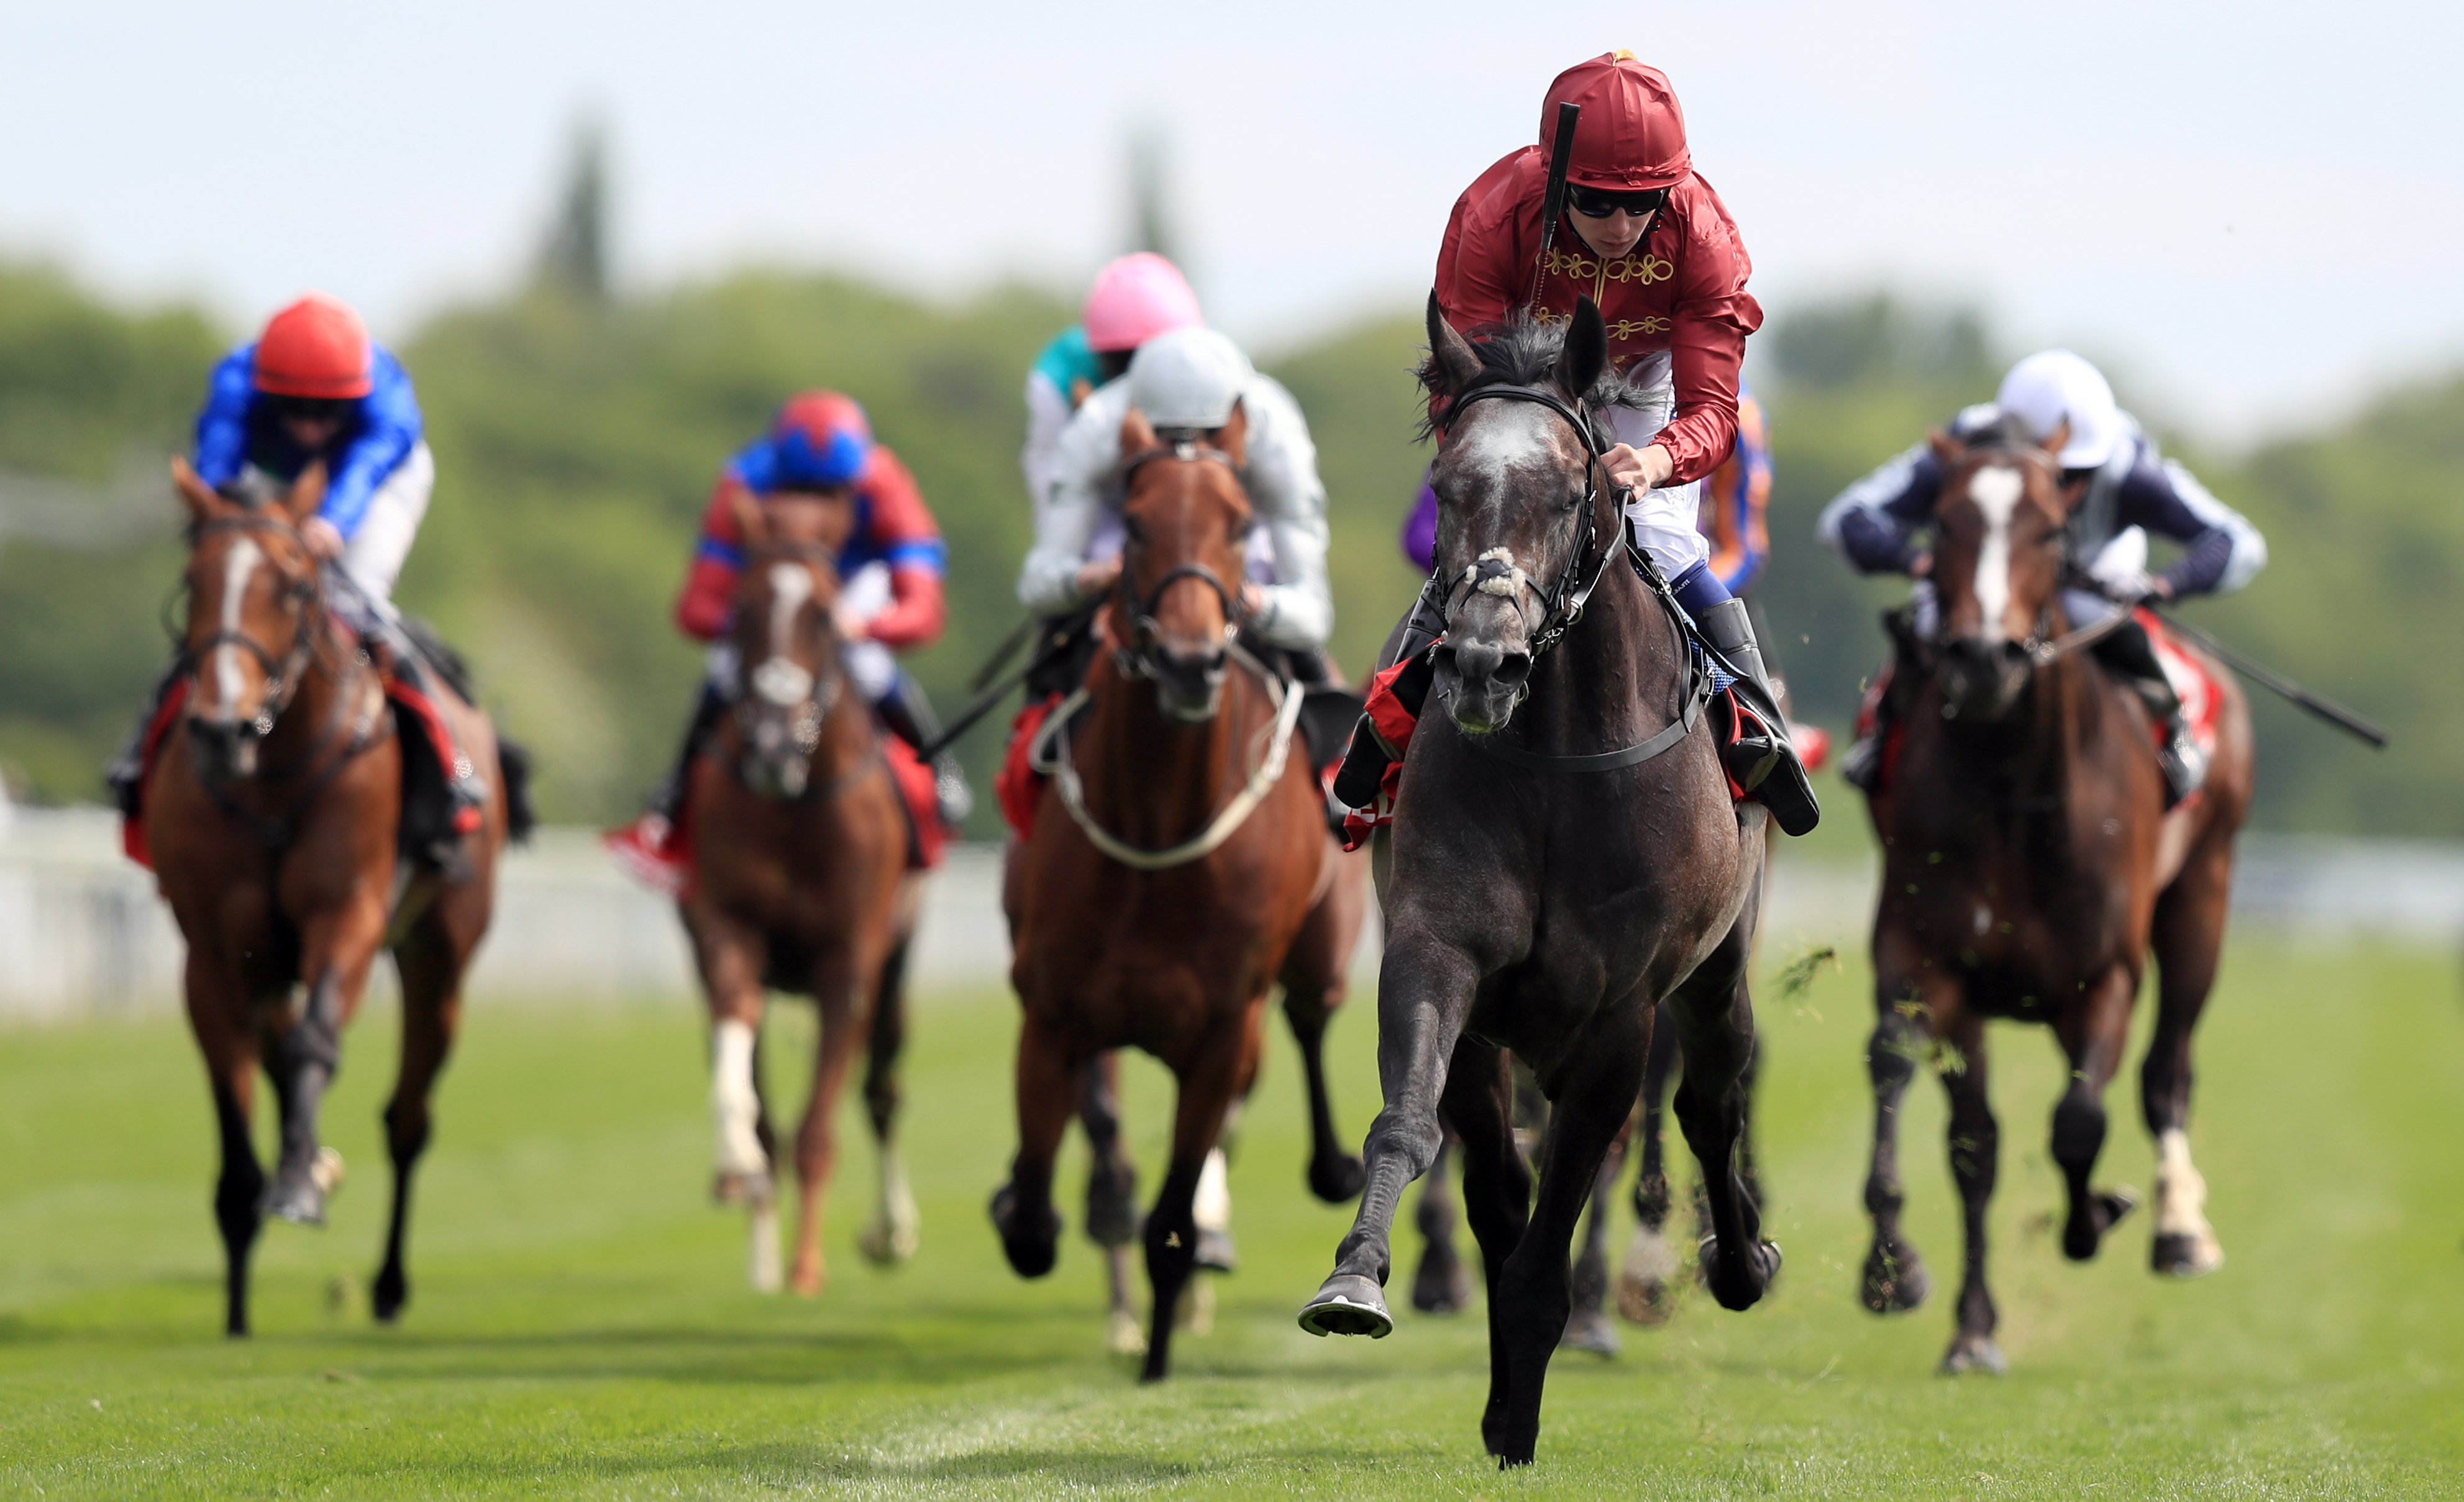 Roaring Lion was an easy winner of the Dante on his last visit to York